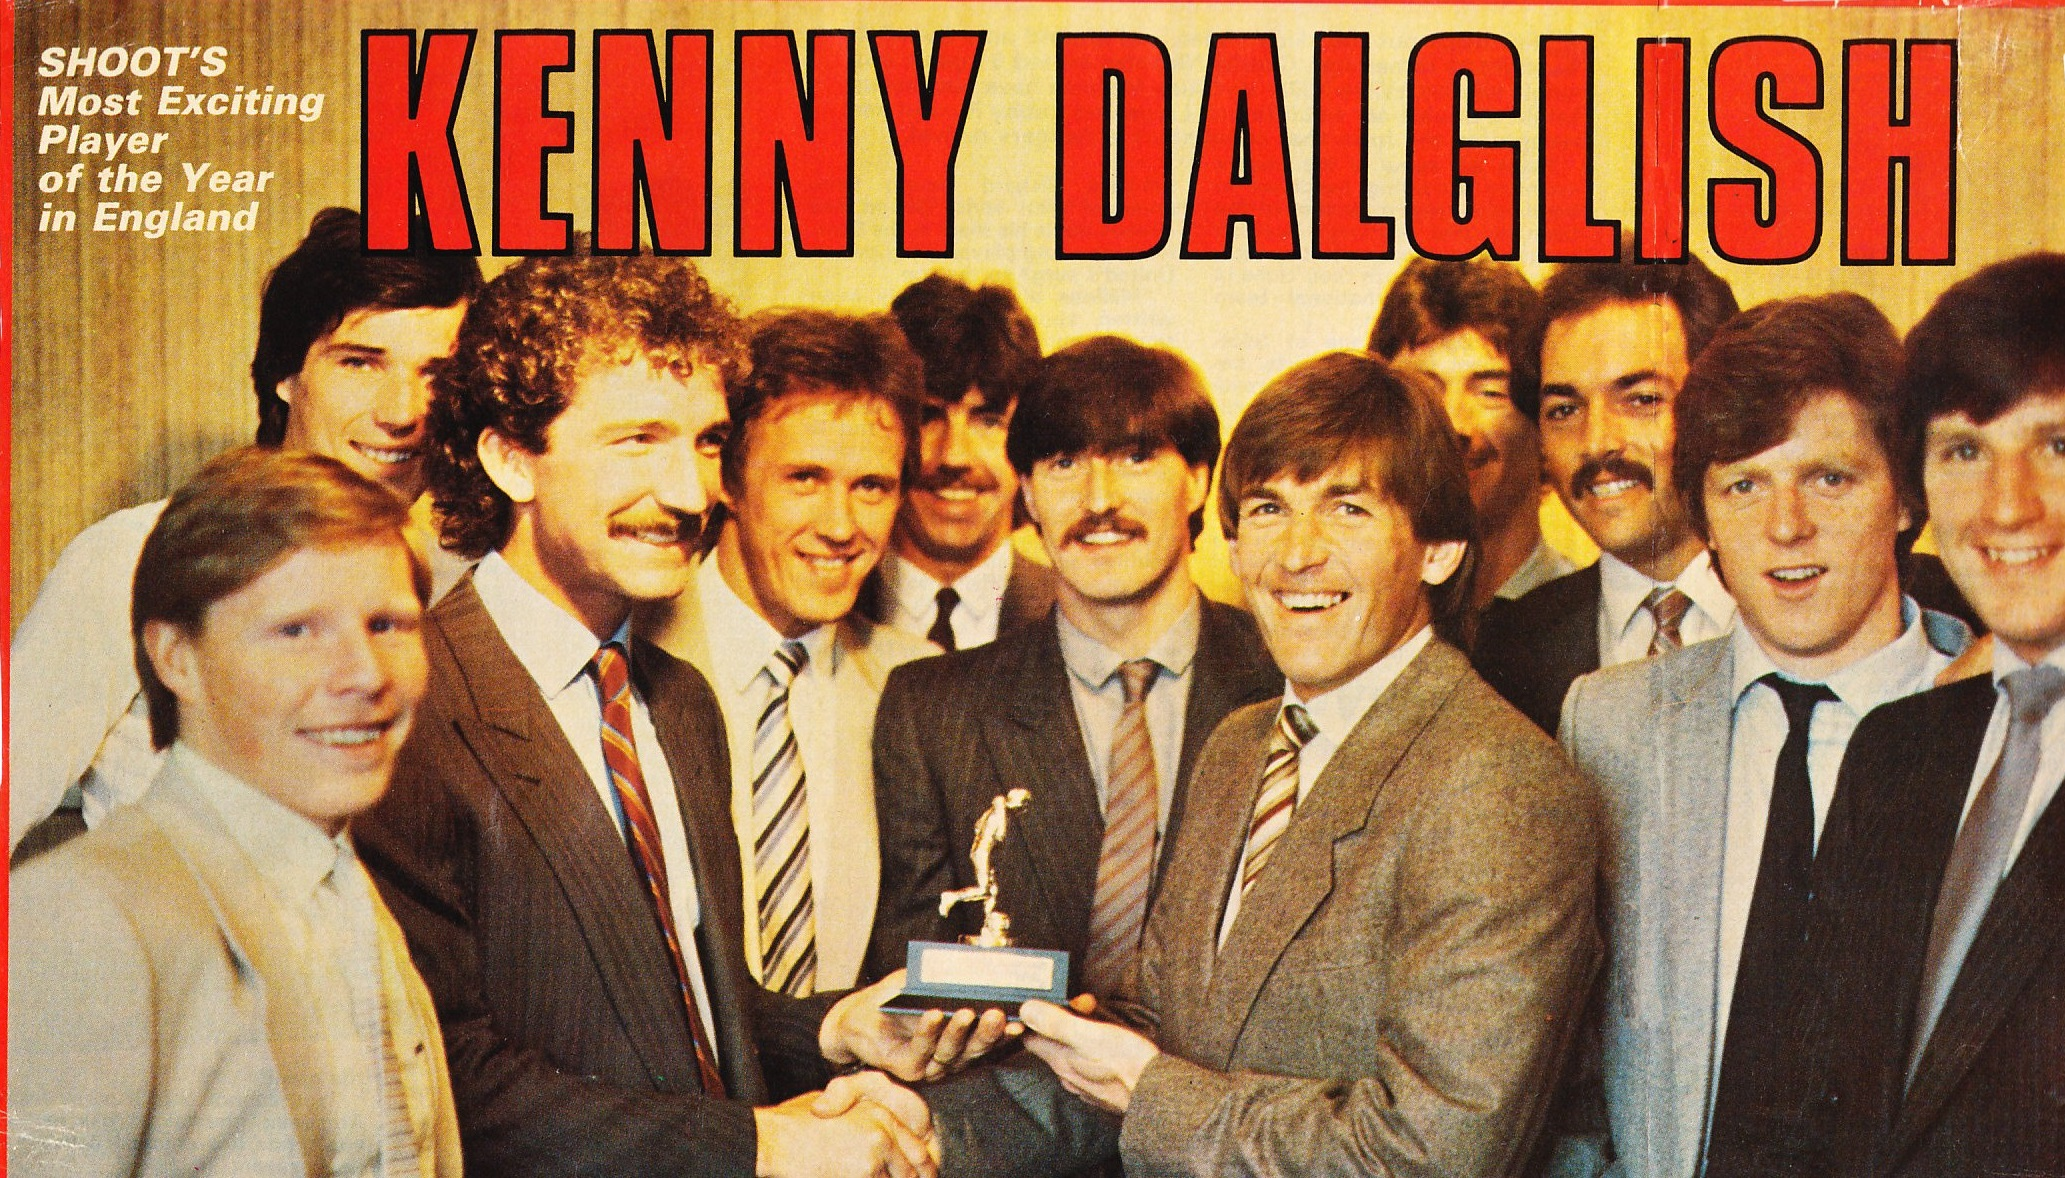 Kenny voted the most exciting player of the year in England in 1983